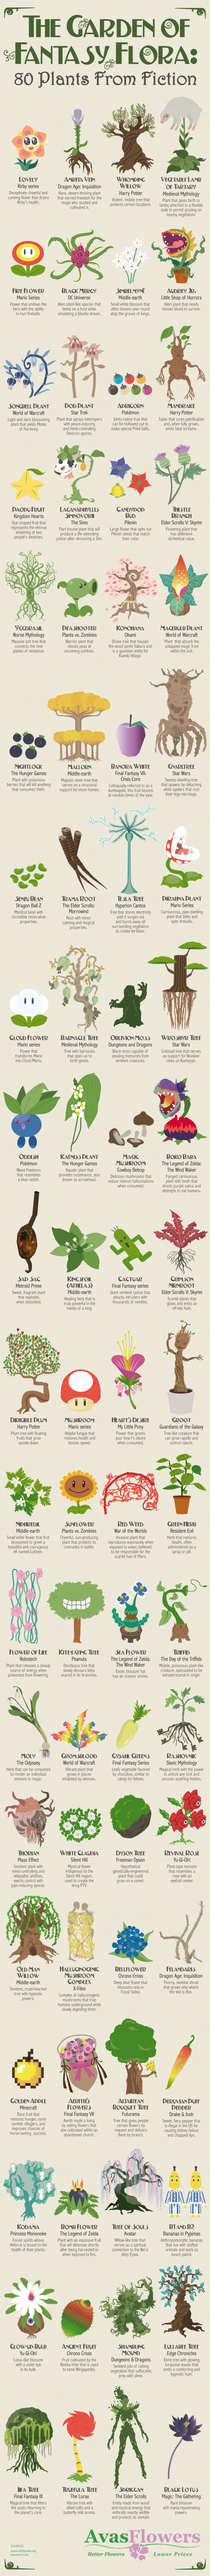 80 Plants From Fiction Plantae Community